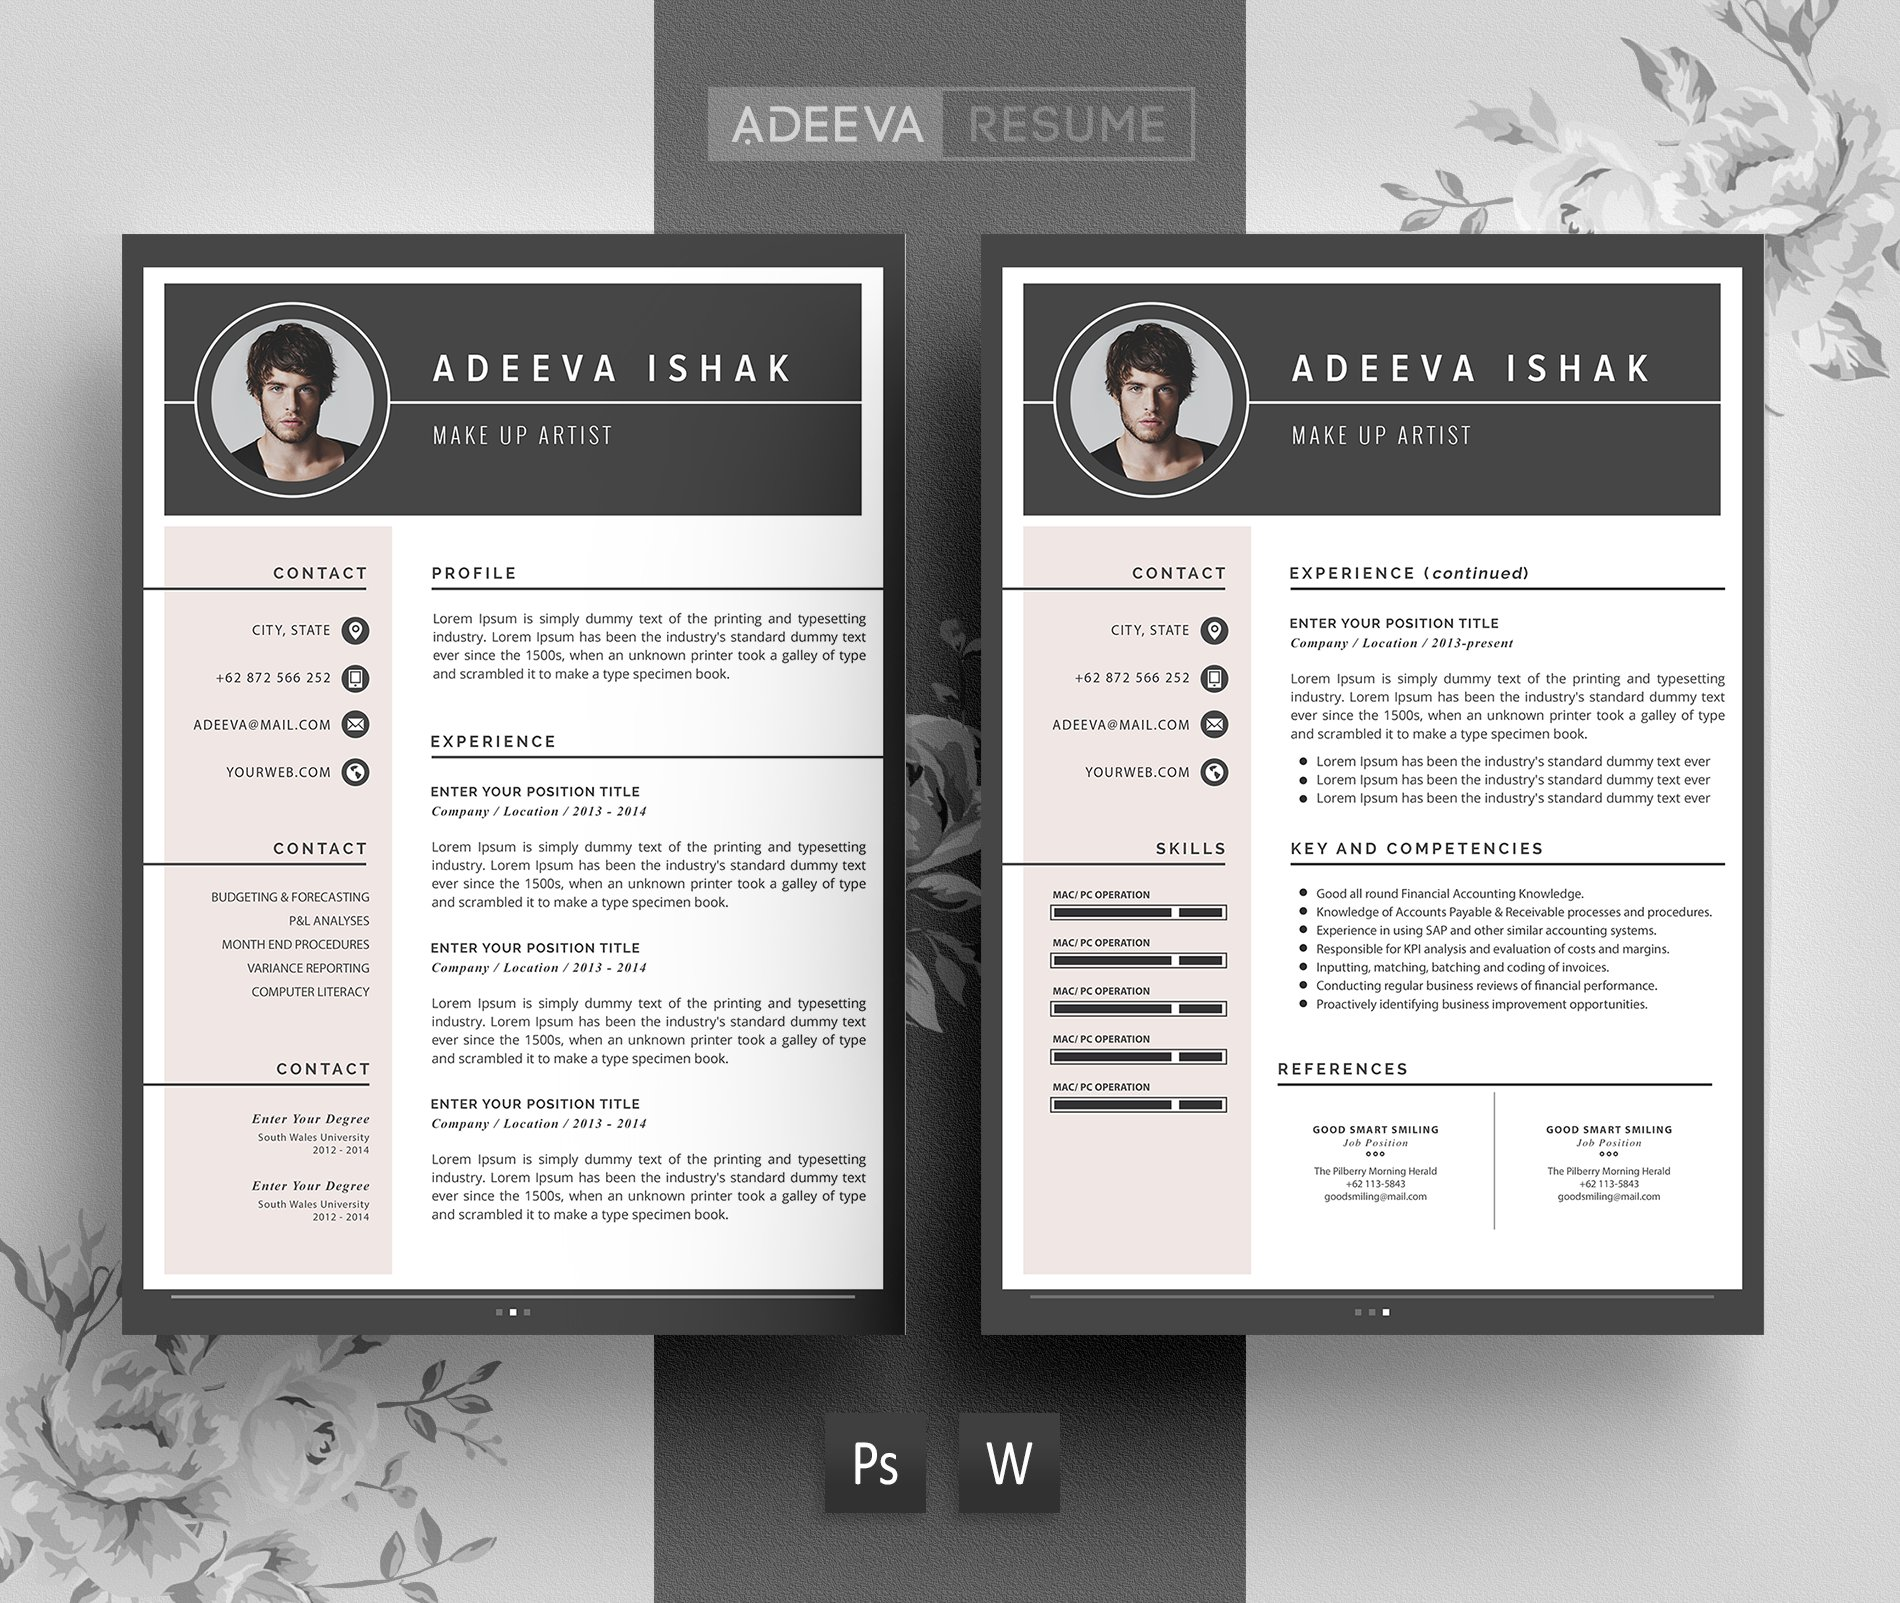 Professional Resume Template Ishak ~ Resume Templates ~ Creative ...